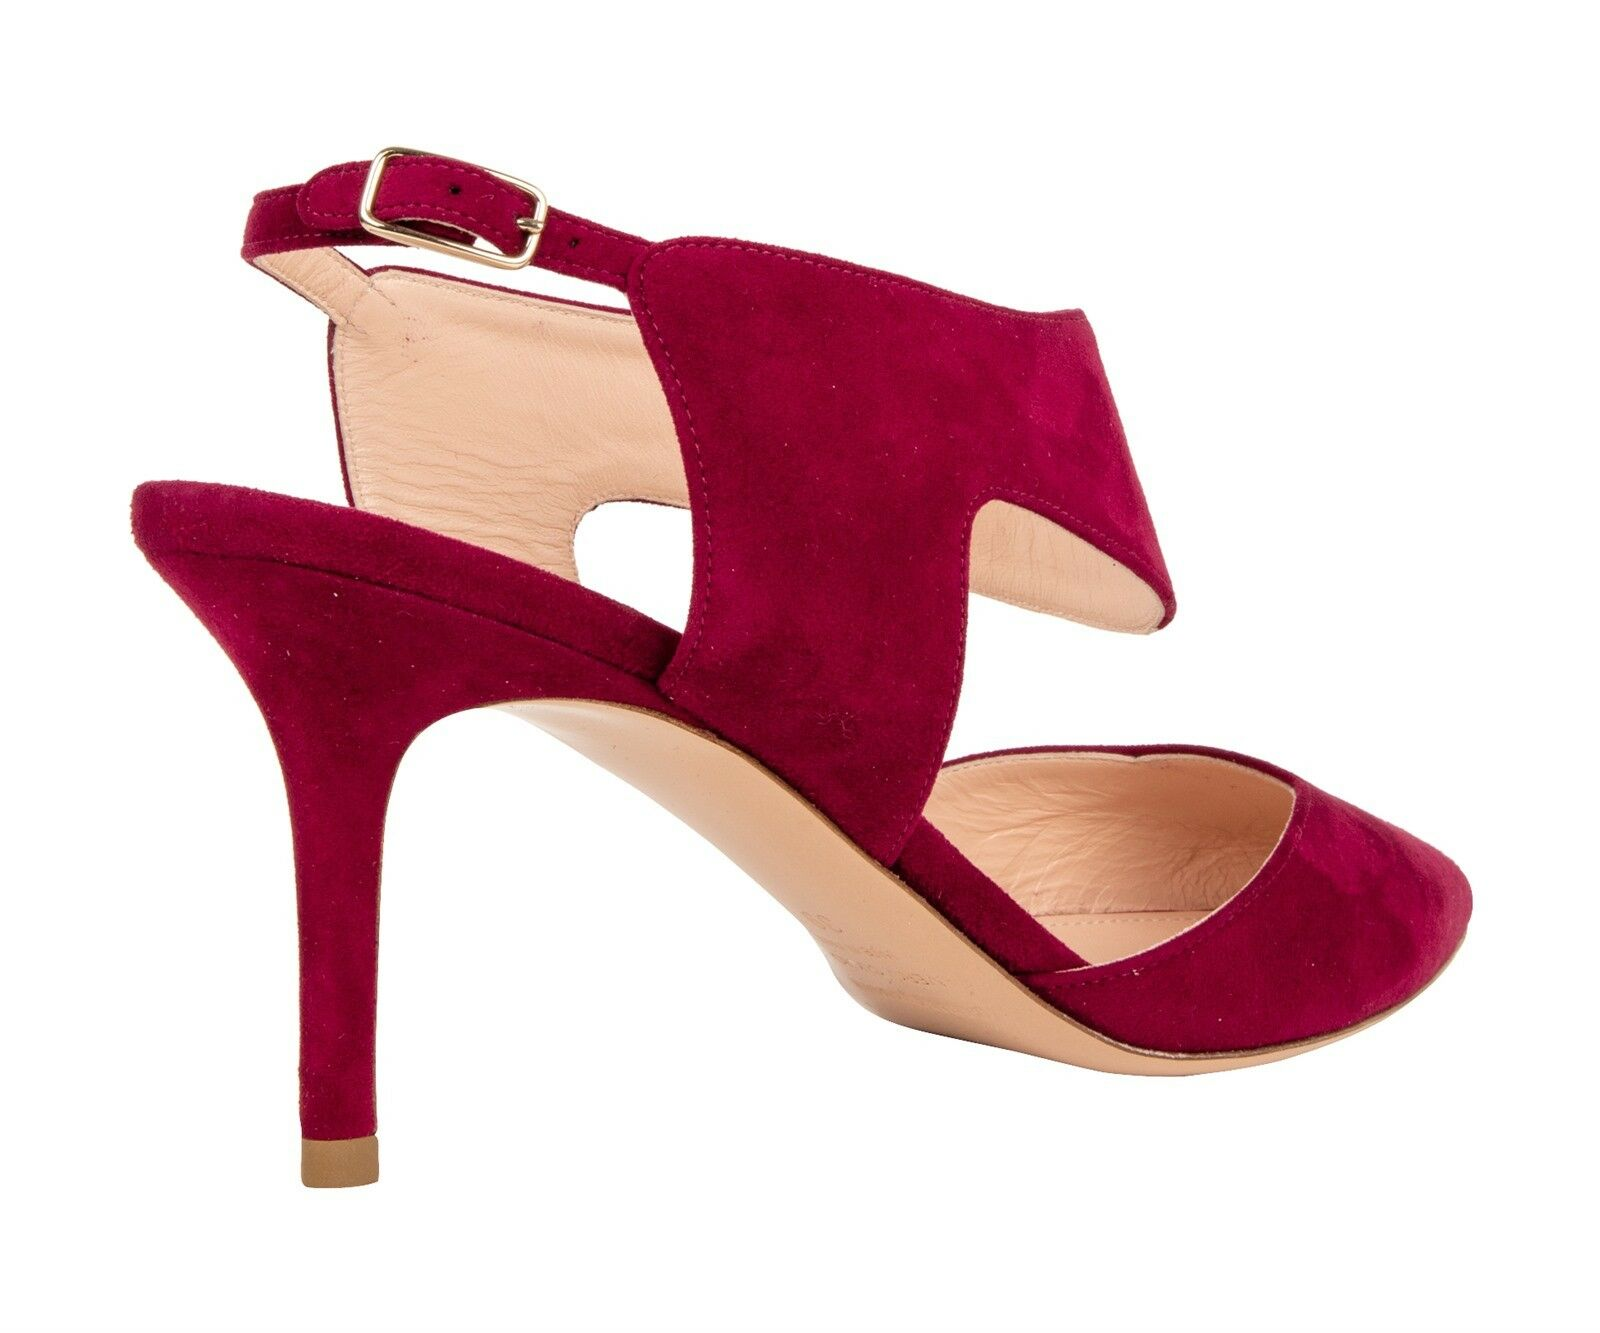 Nicholas Kirkwood shoes Suede Red Red Red Rich Claret 38   8 New w  Box 0dea01